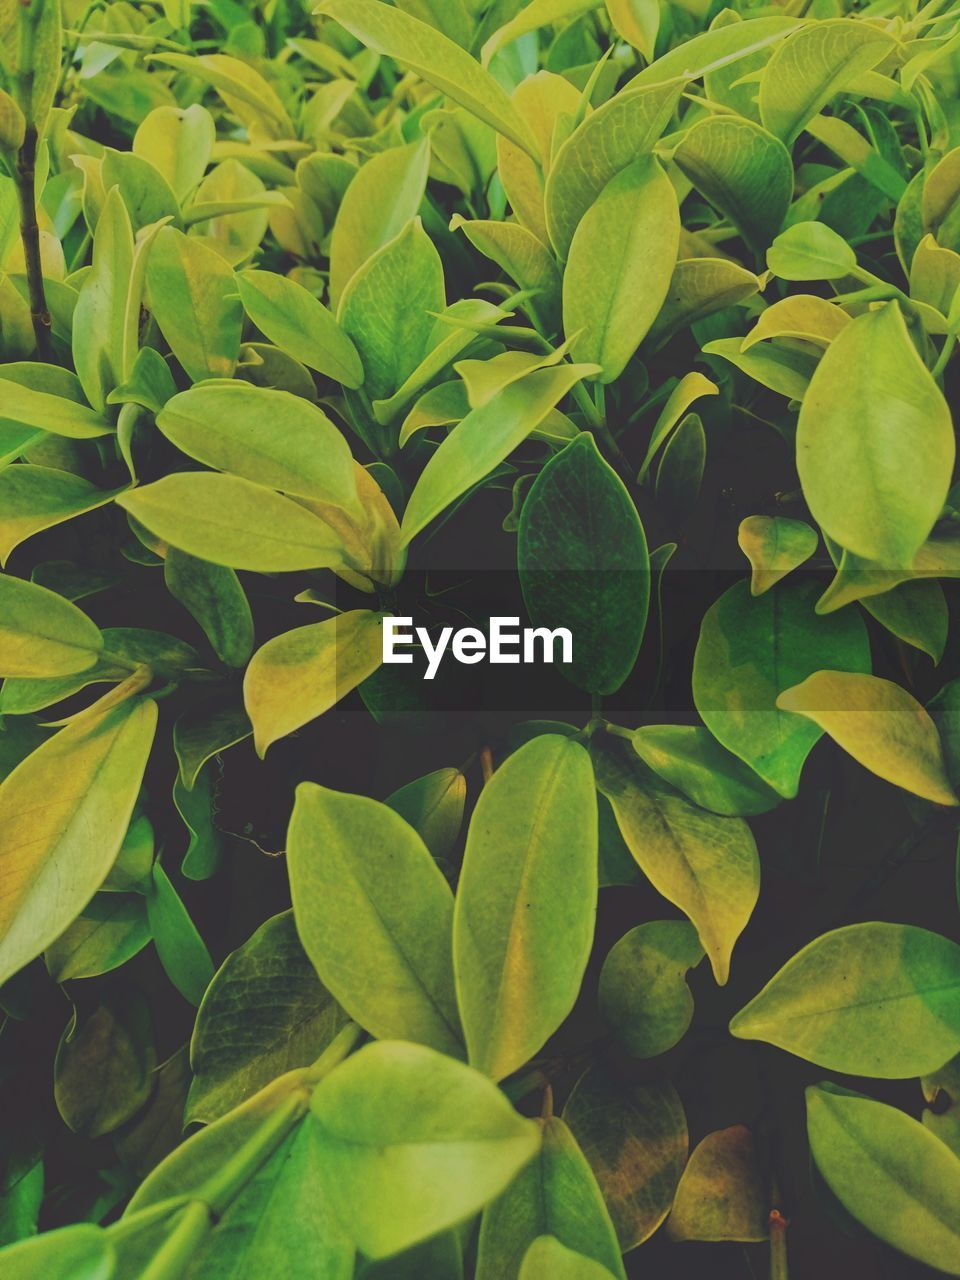 leaf, plant part, growth, green color, plant, full frame, beauty in nature, close-up, nature, no people, backgrounds, day, outdoors, high angle view, freshness, tranquility, abundance, natural pattern, directly above, foliage, leaves